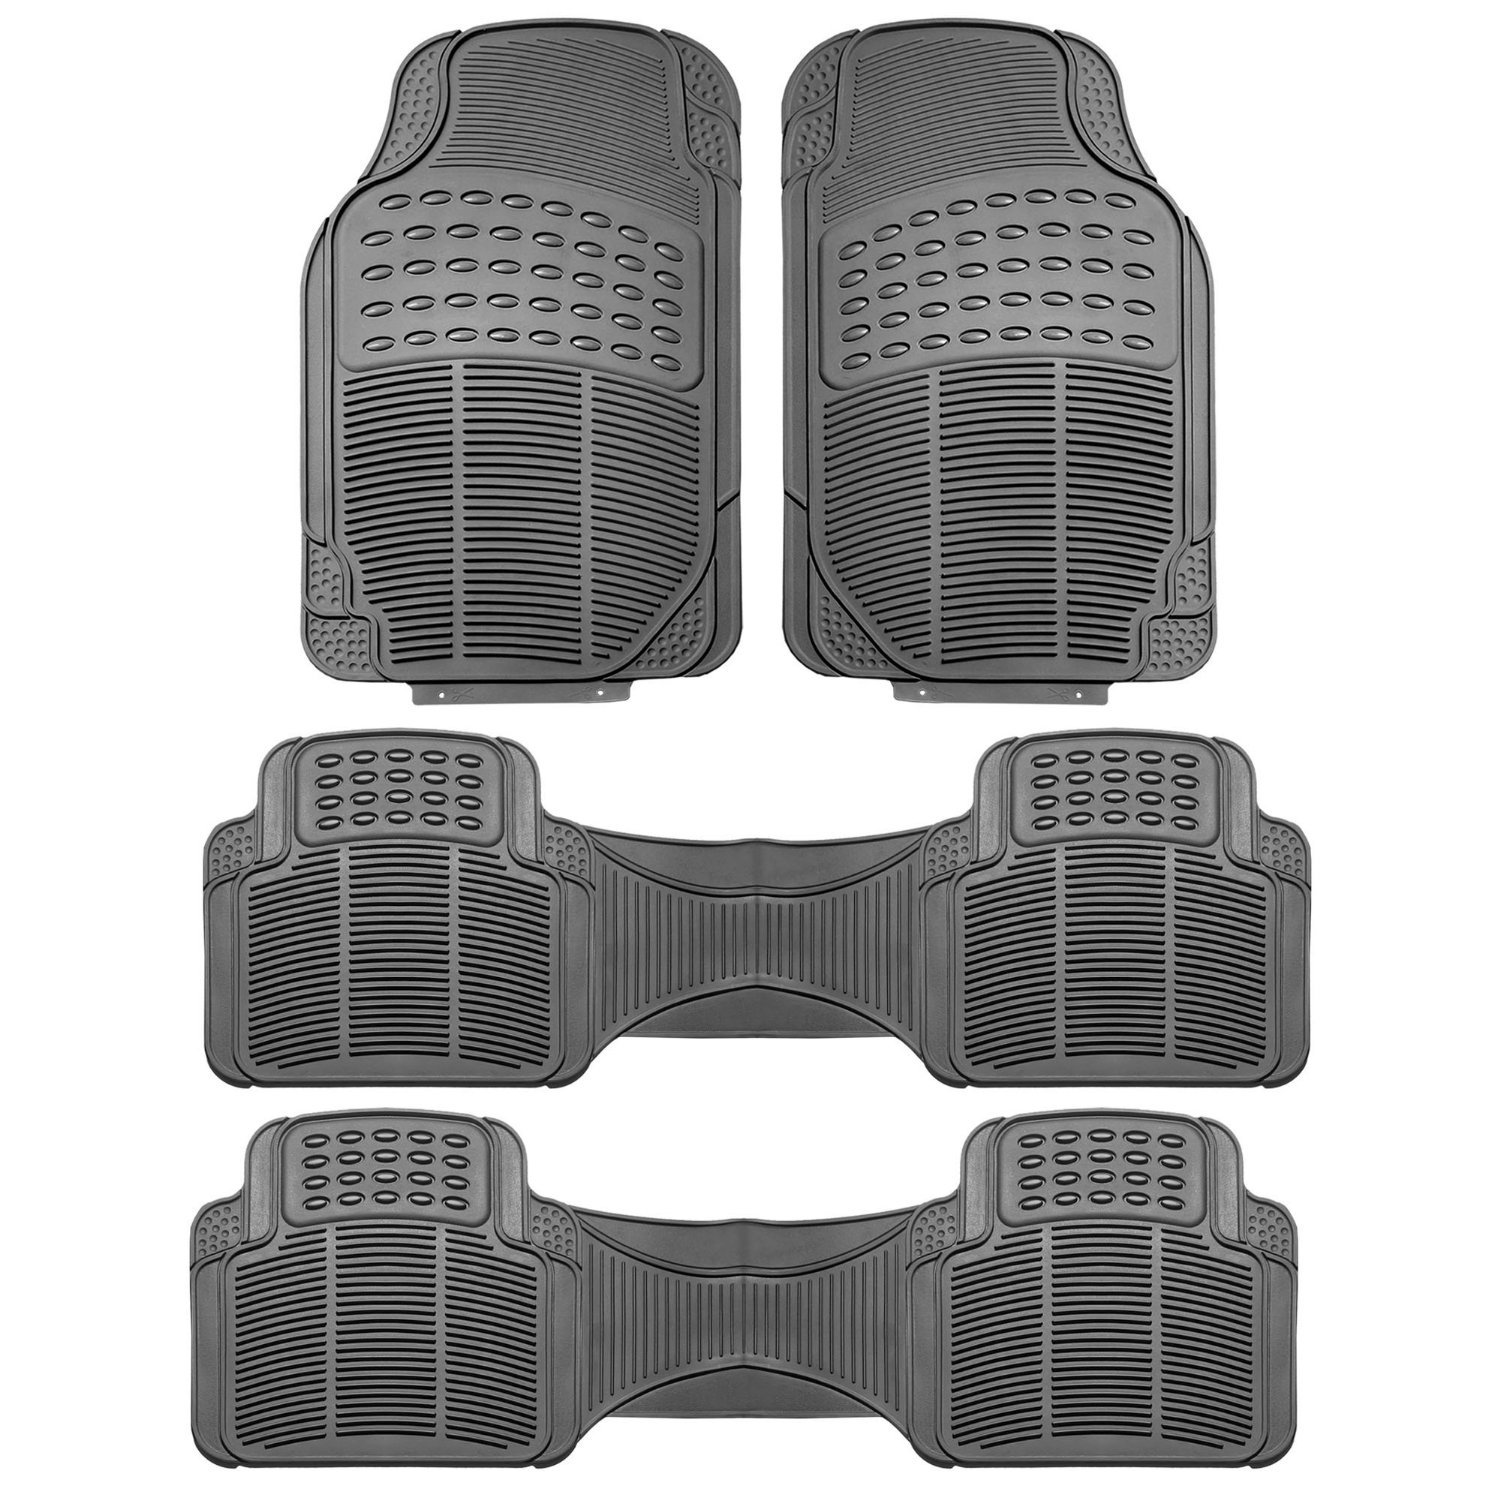 FH Group F11306GRAY-3ROW Floor Mat (Trimmable Heavy Duty 3 Row SUV All Weather 4pc Full Set - Gray) by FH Group